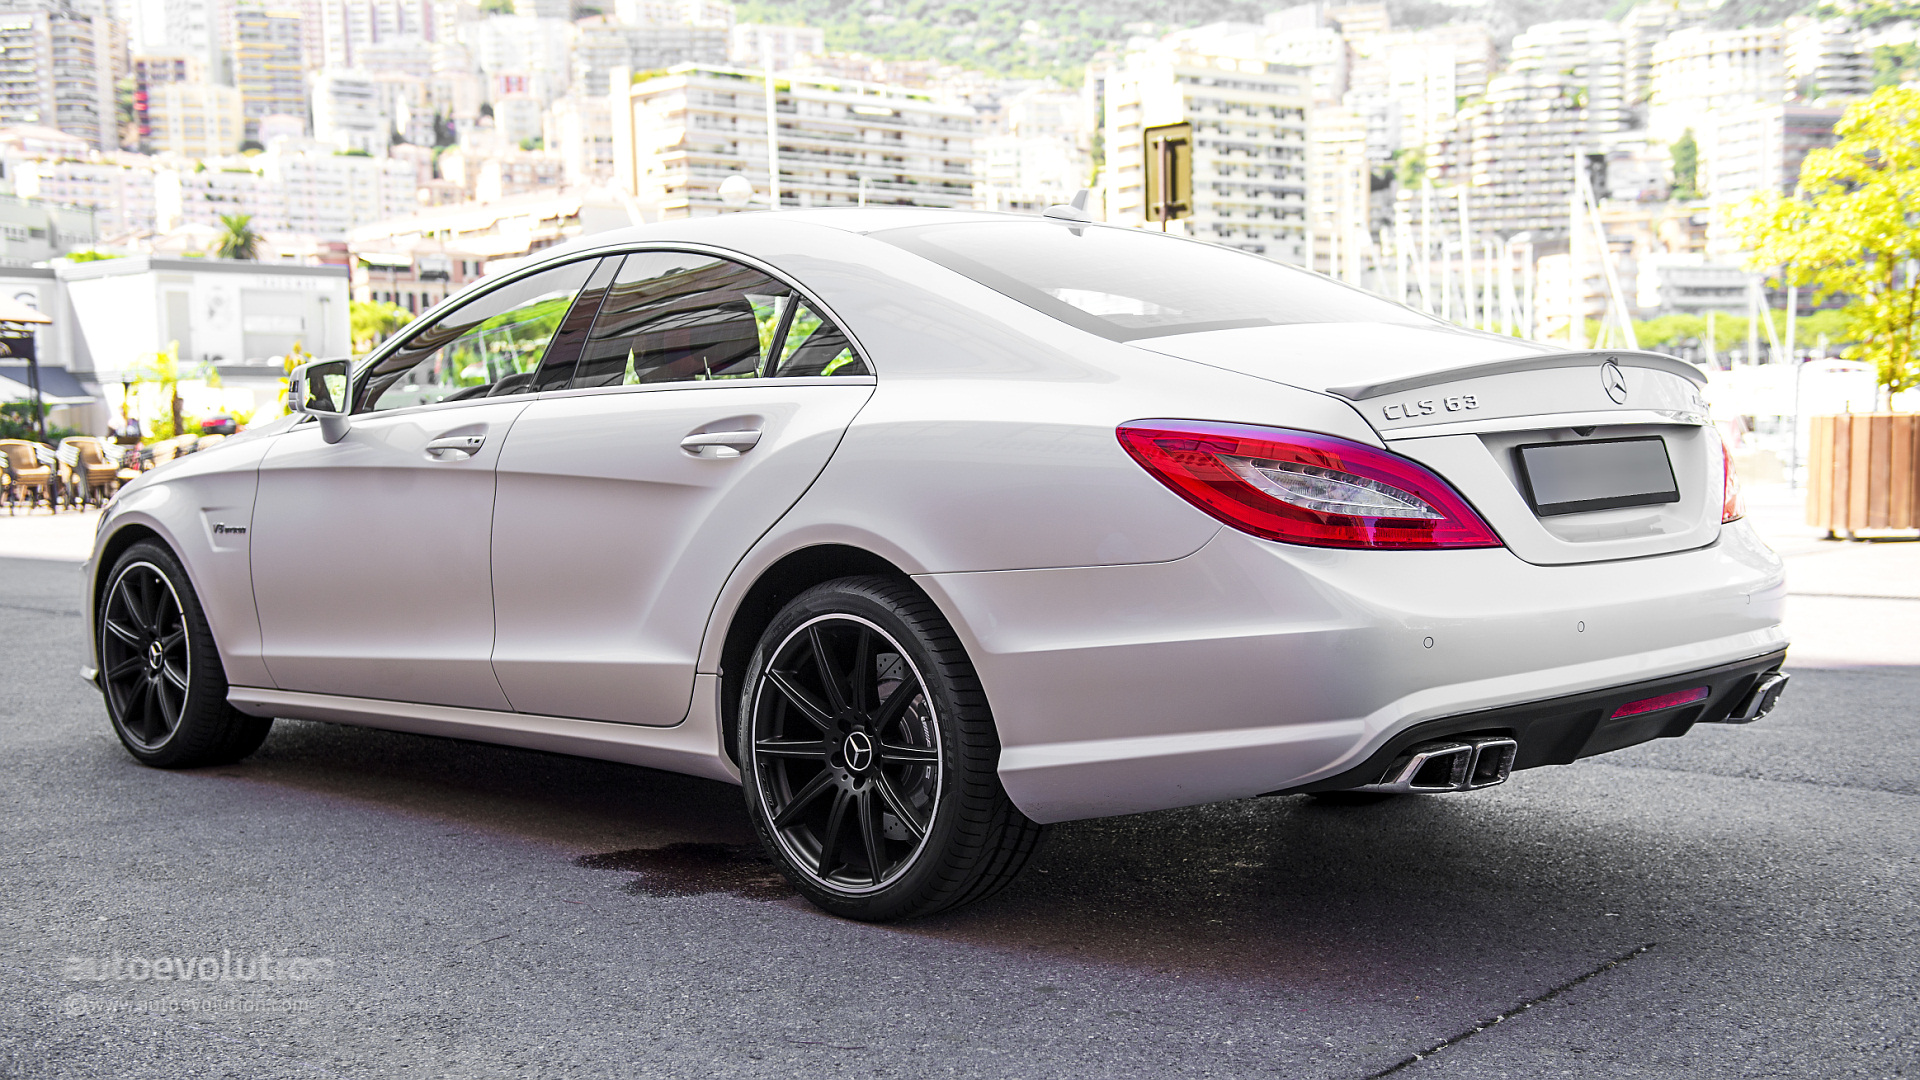 2014 mercedes benz cls63 amg 4matic review autoevolution. Black Bedroom Furniture Sets. Home Design Ideas